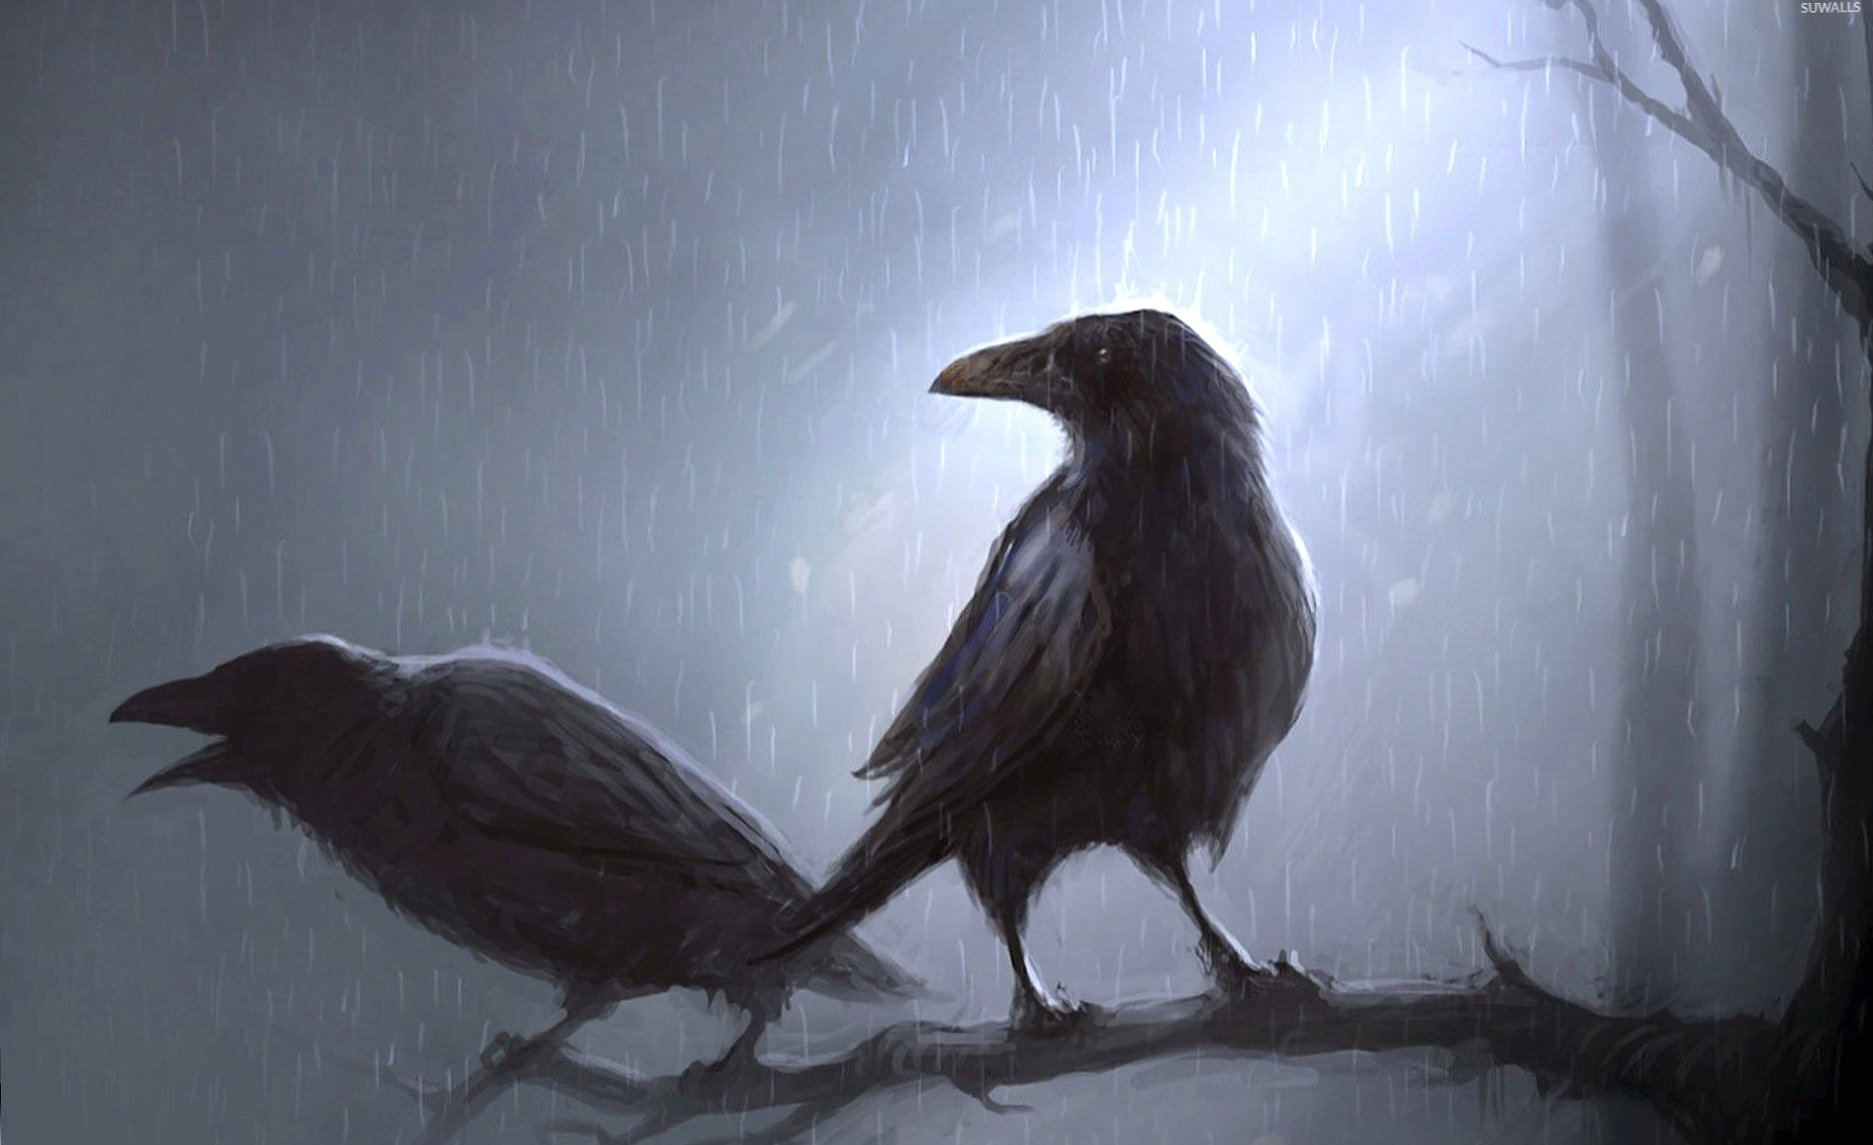 Crows standing in the rain on the branch wallpapers HD quality